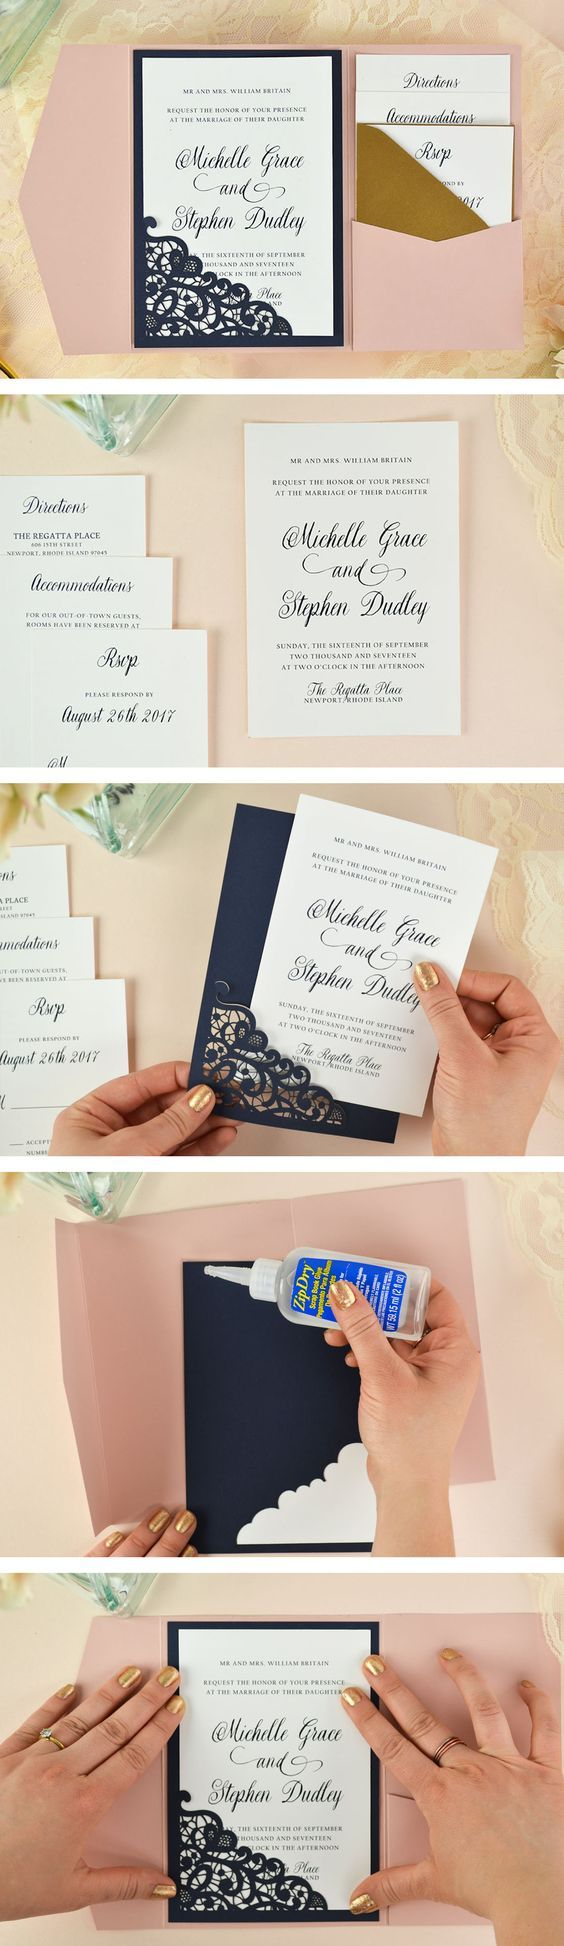 sample of wedding invitations templates%0A Best     Wedding invitations ideas on Pinterest   Writing wedding  invitations  Wedding invitation wording and How to make invitations